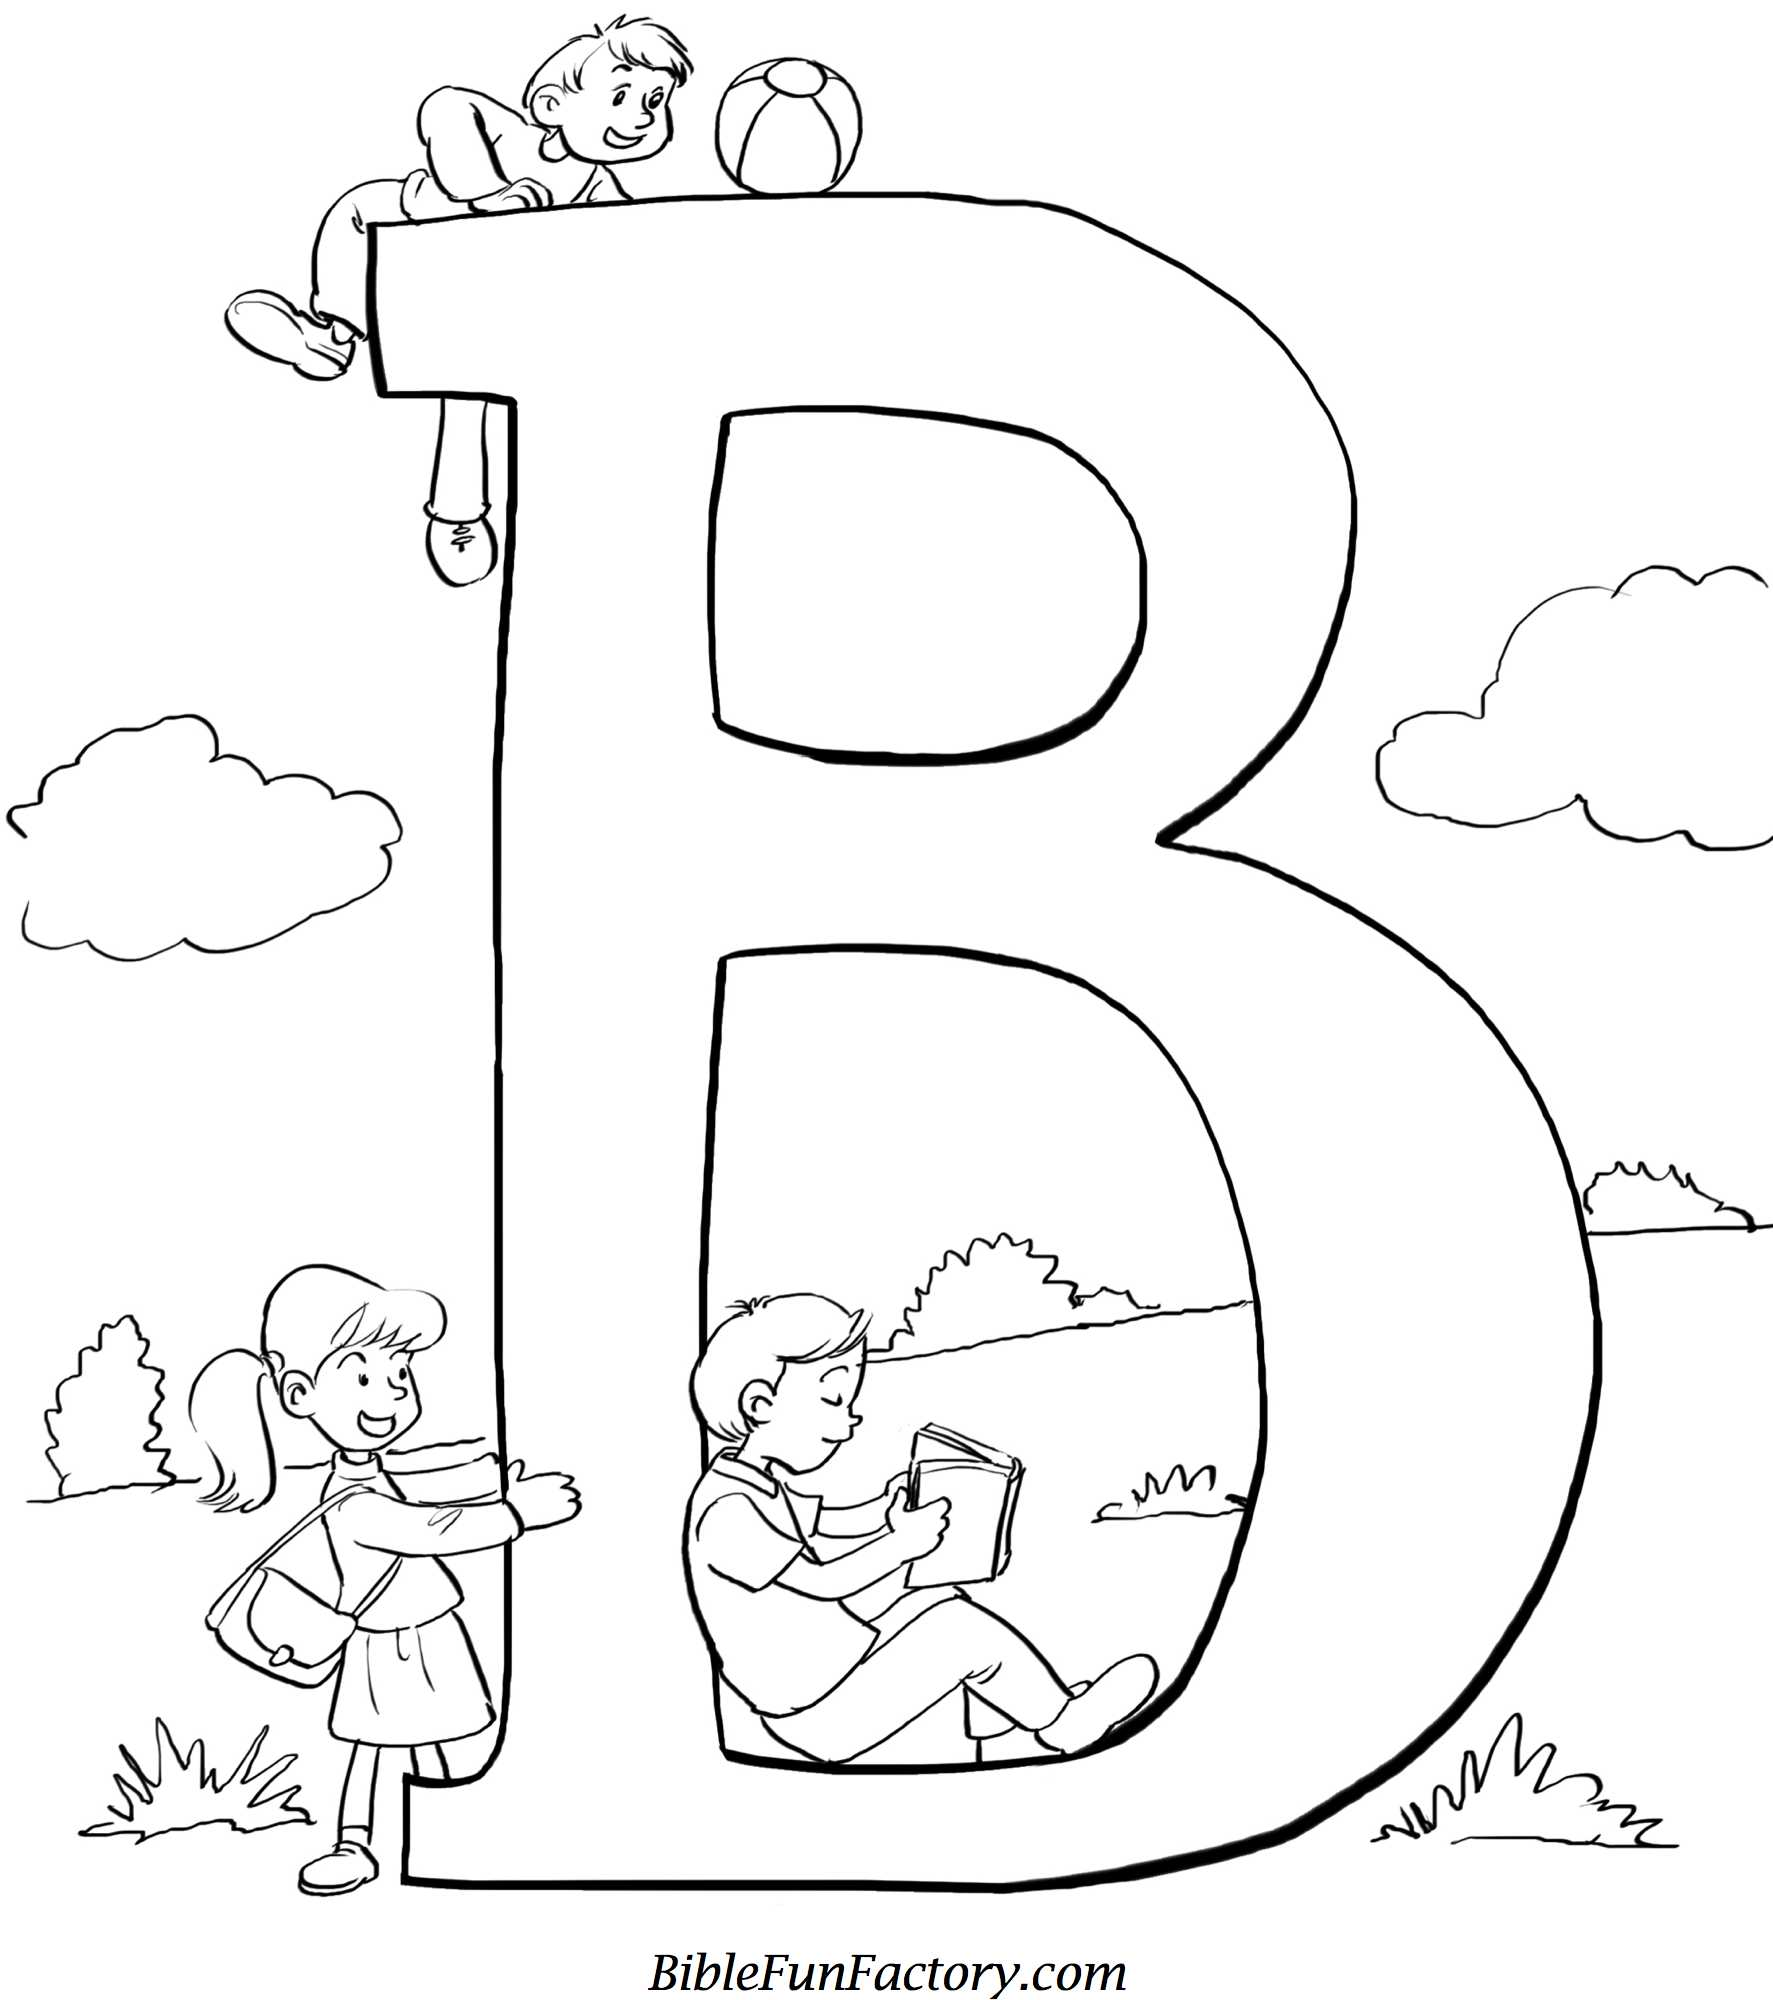 image about Printable Bible Games Kids named Printable Bible Coloring Internet pages For Youngsters at